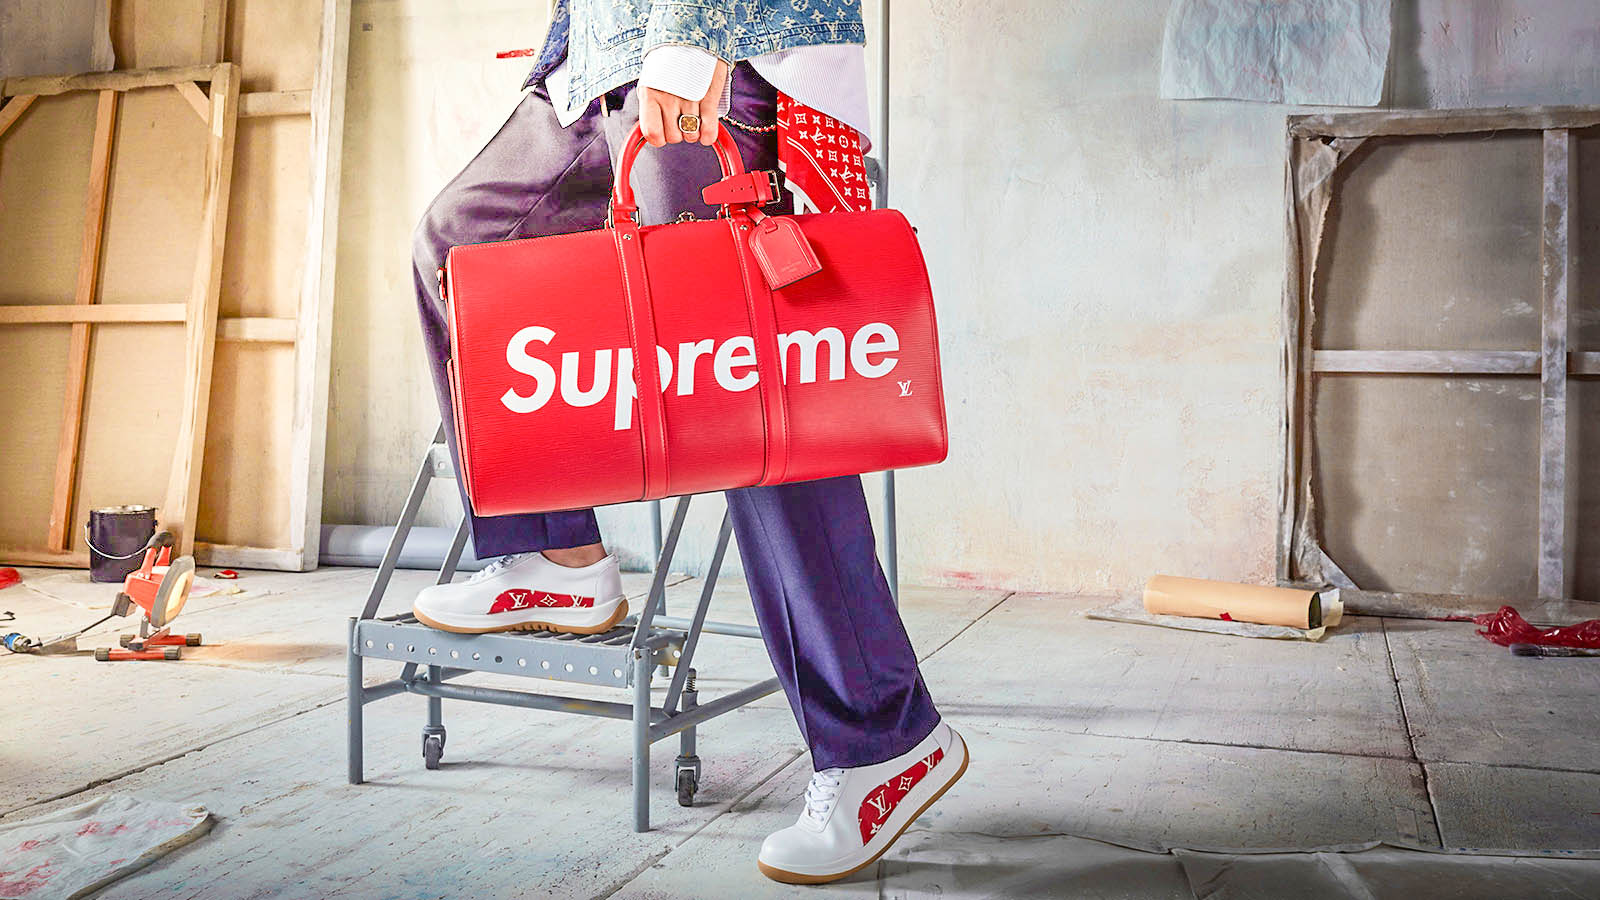 Supreme Bag Collection Wallpaper Original